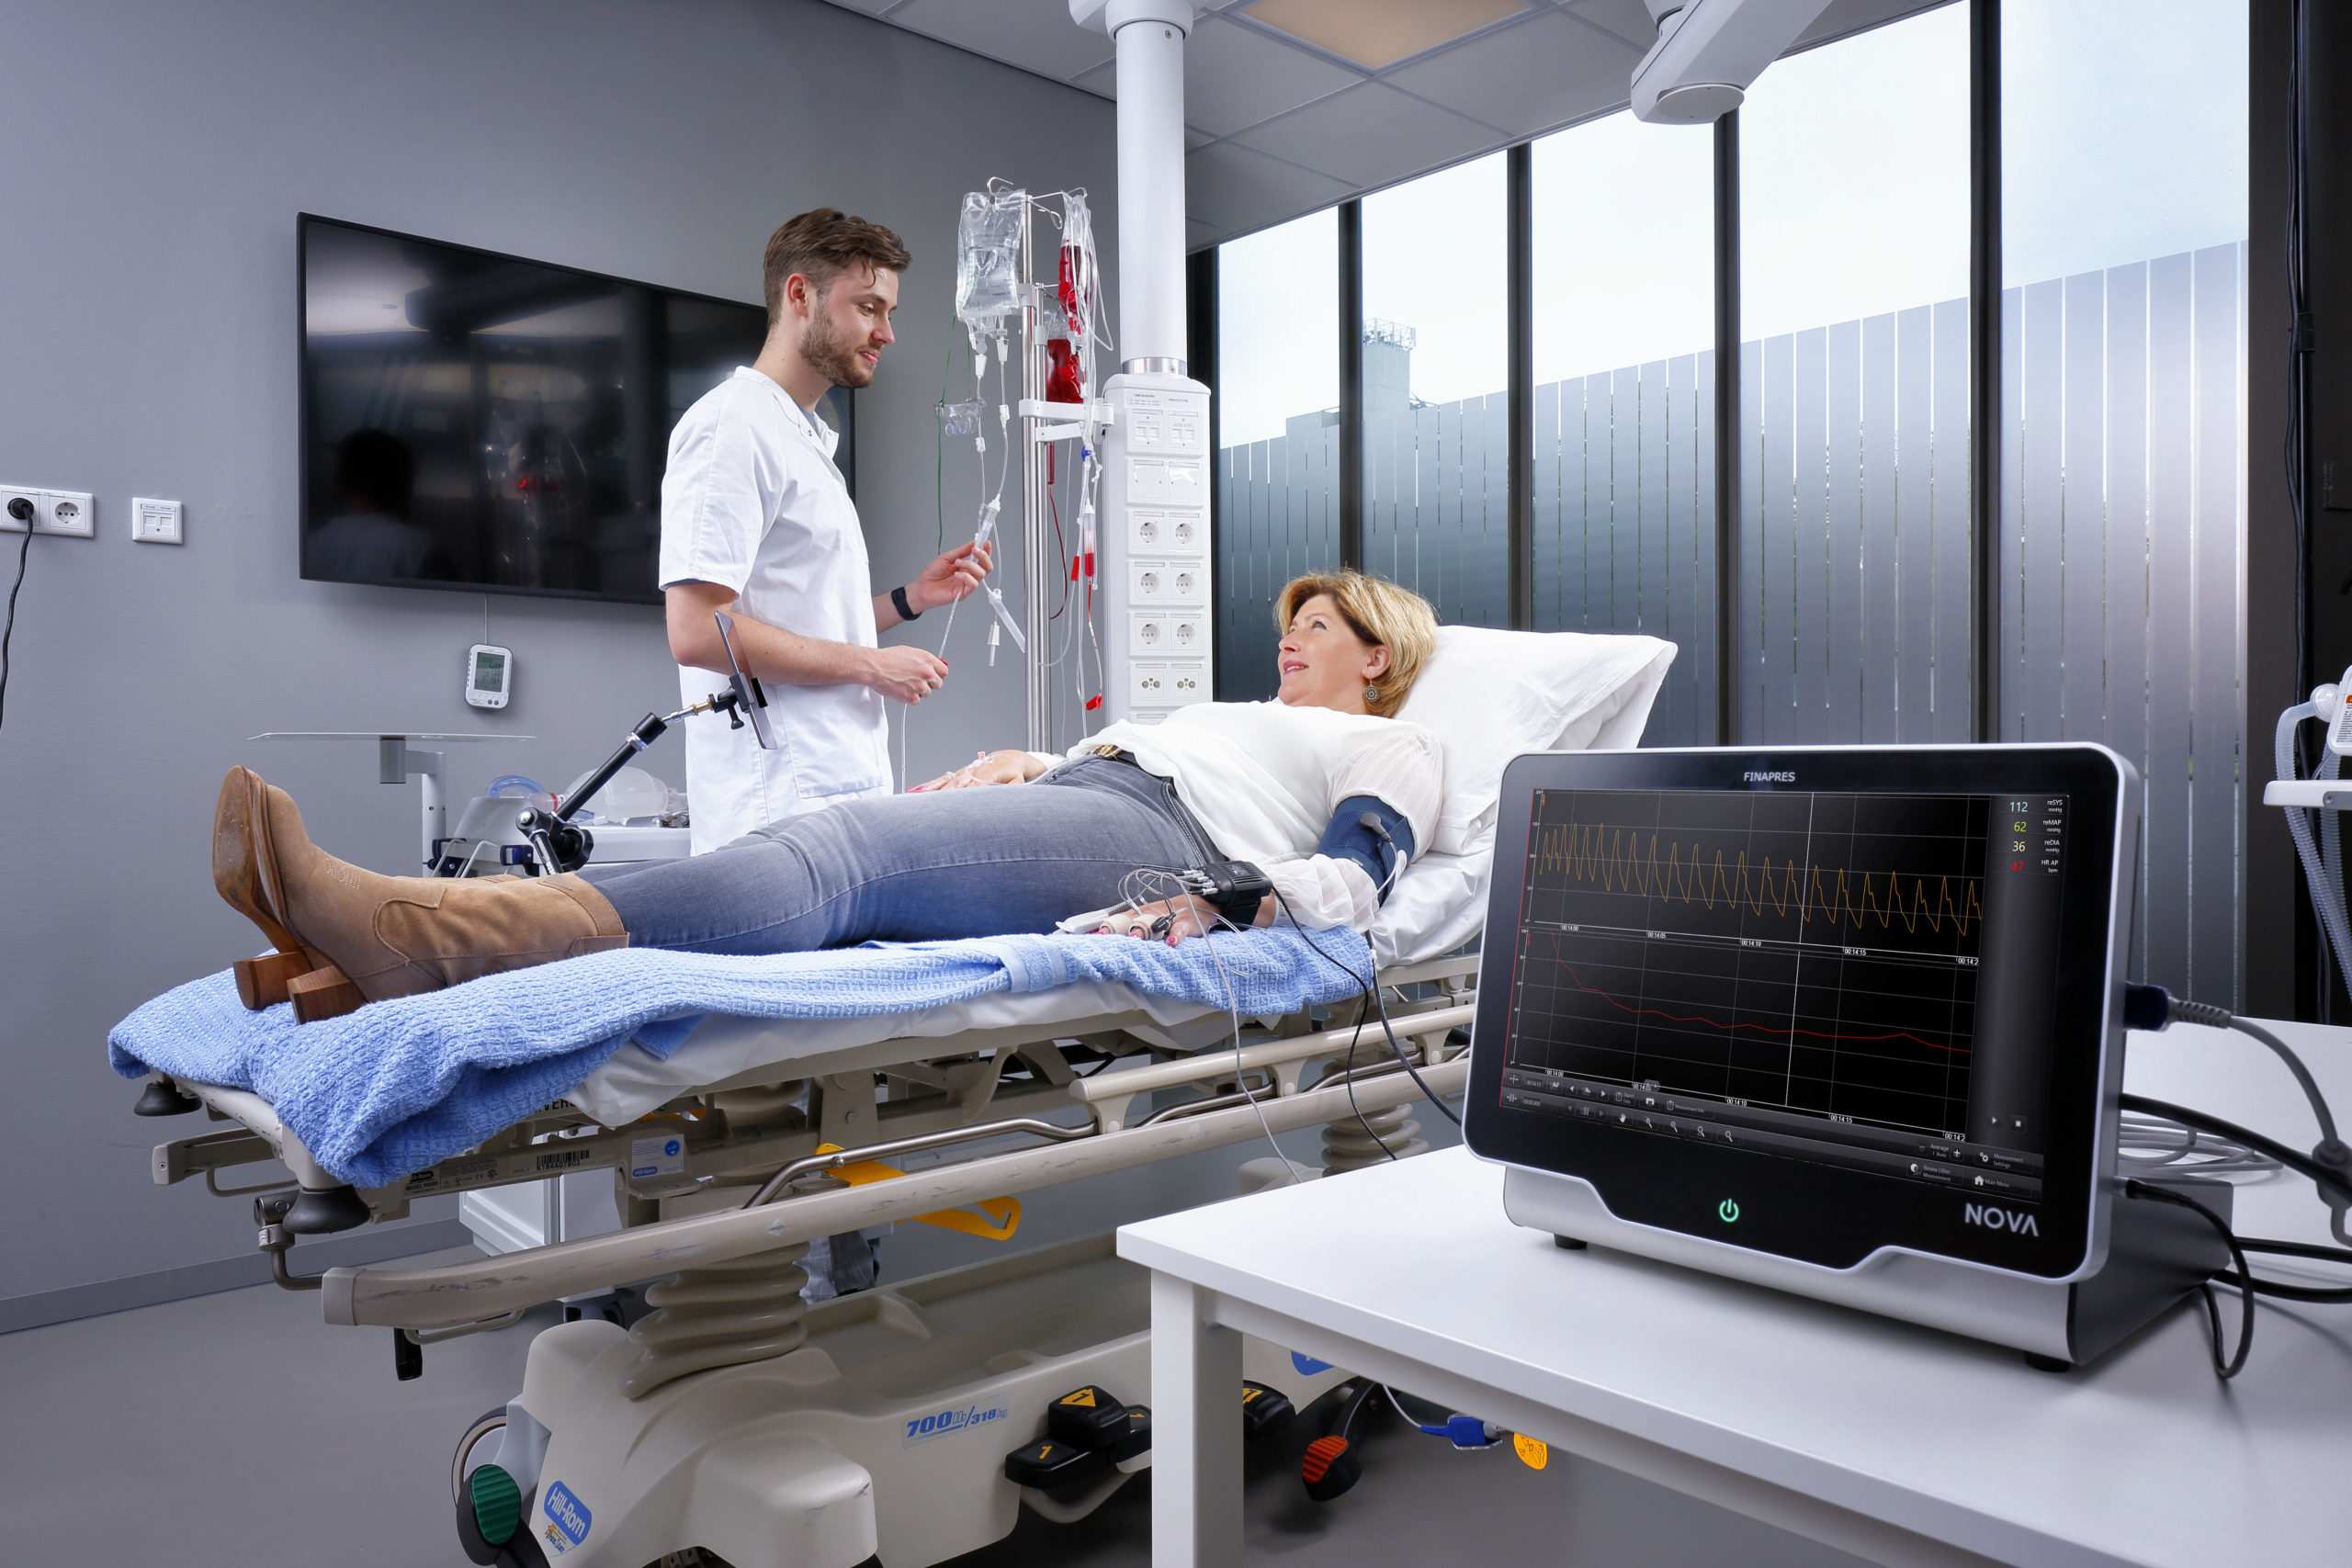 Drugs administration test with theFinapres®Guided Autonomic Testing application